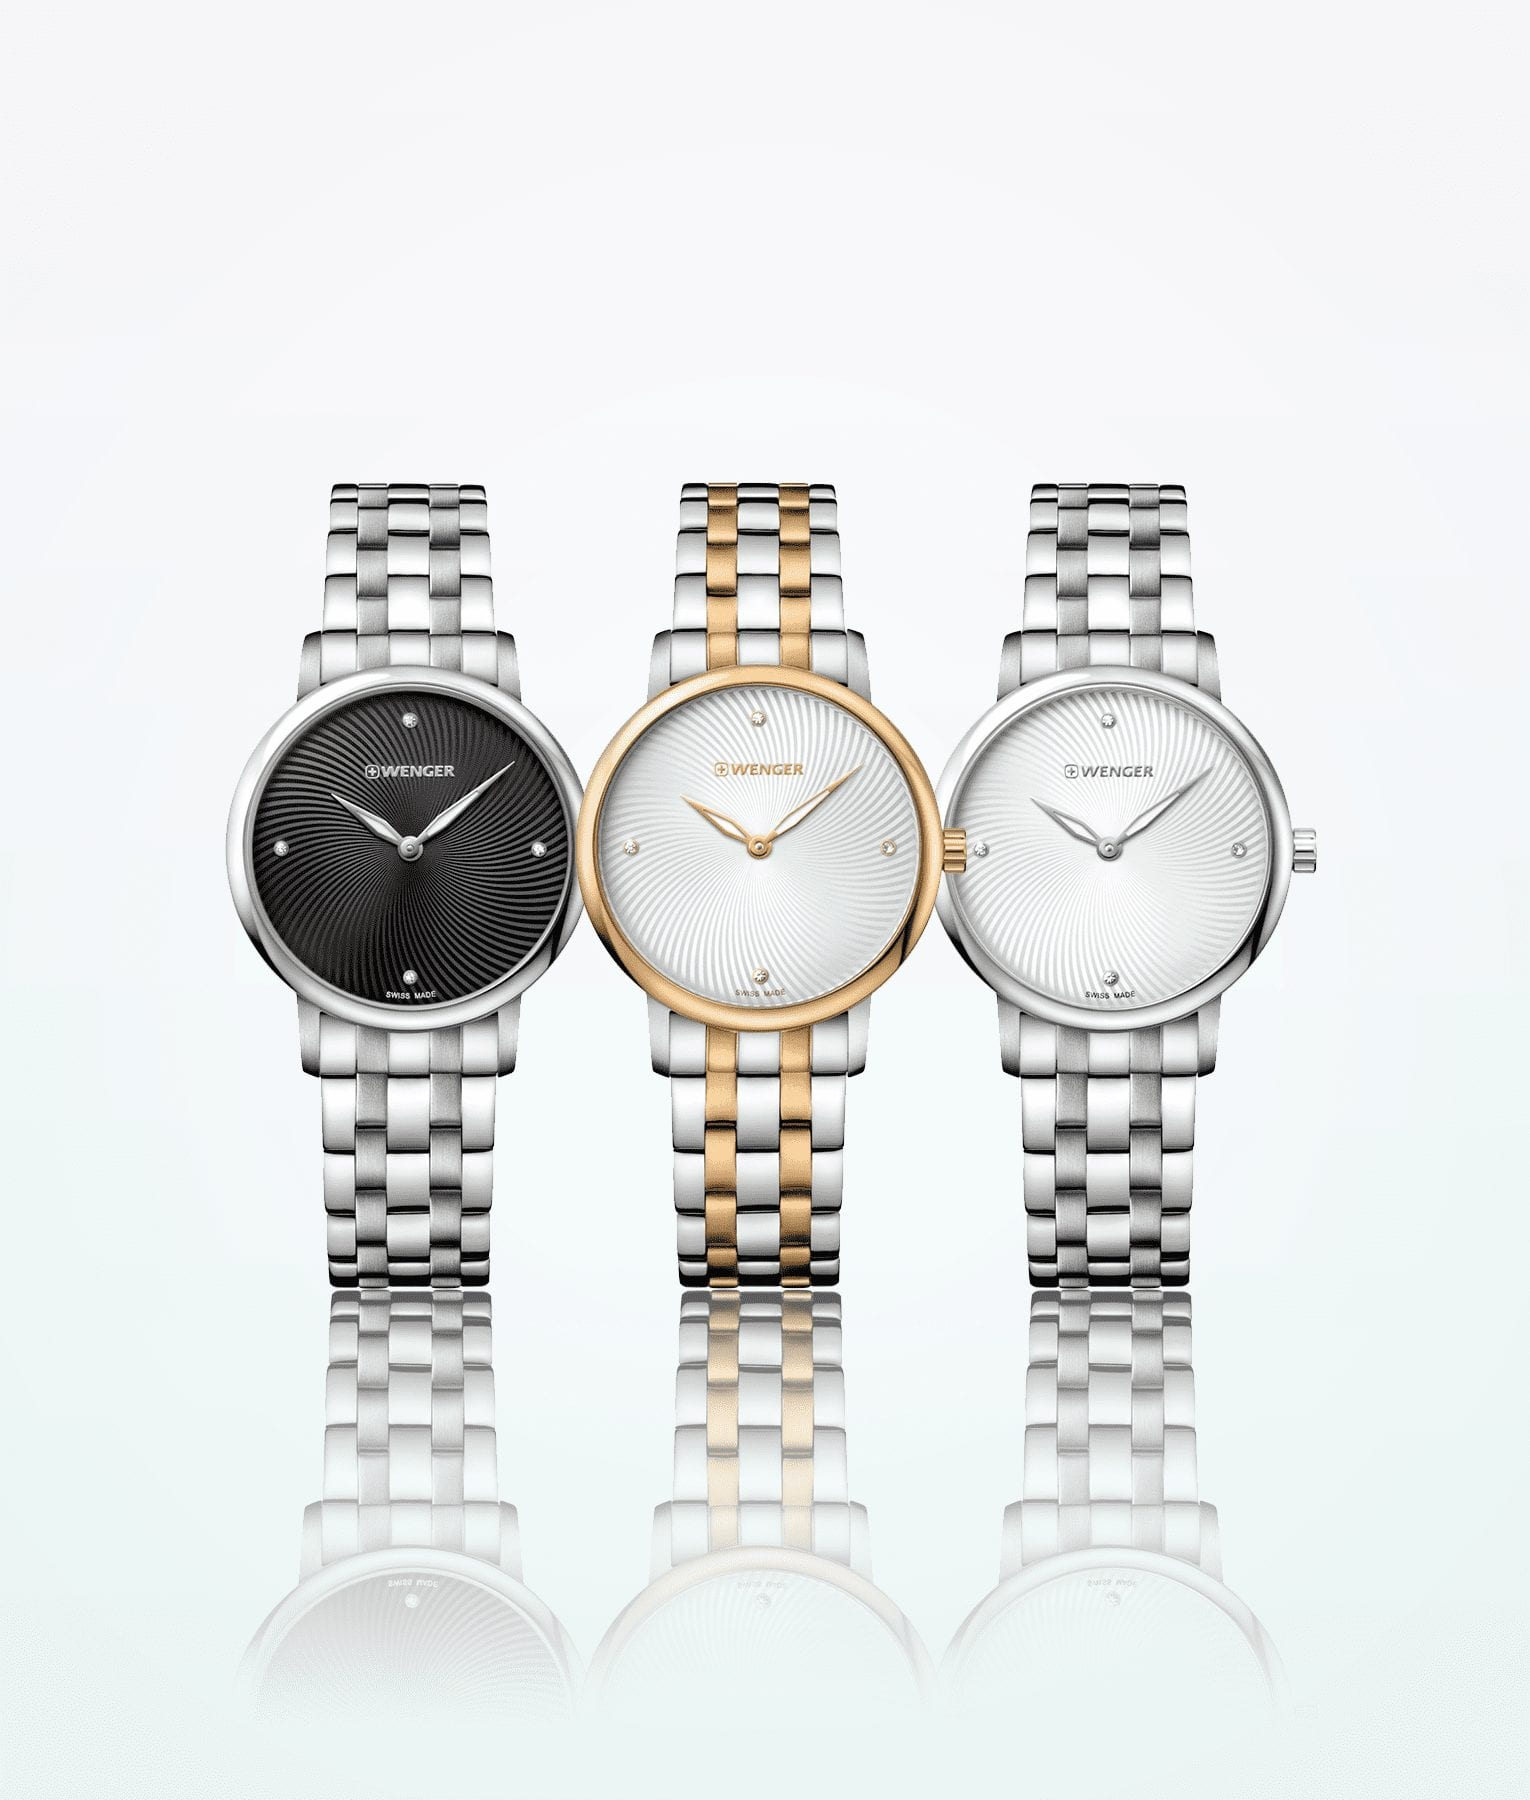 wenger-urban-dionissima-women-wistwatch